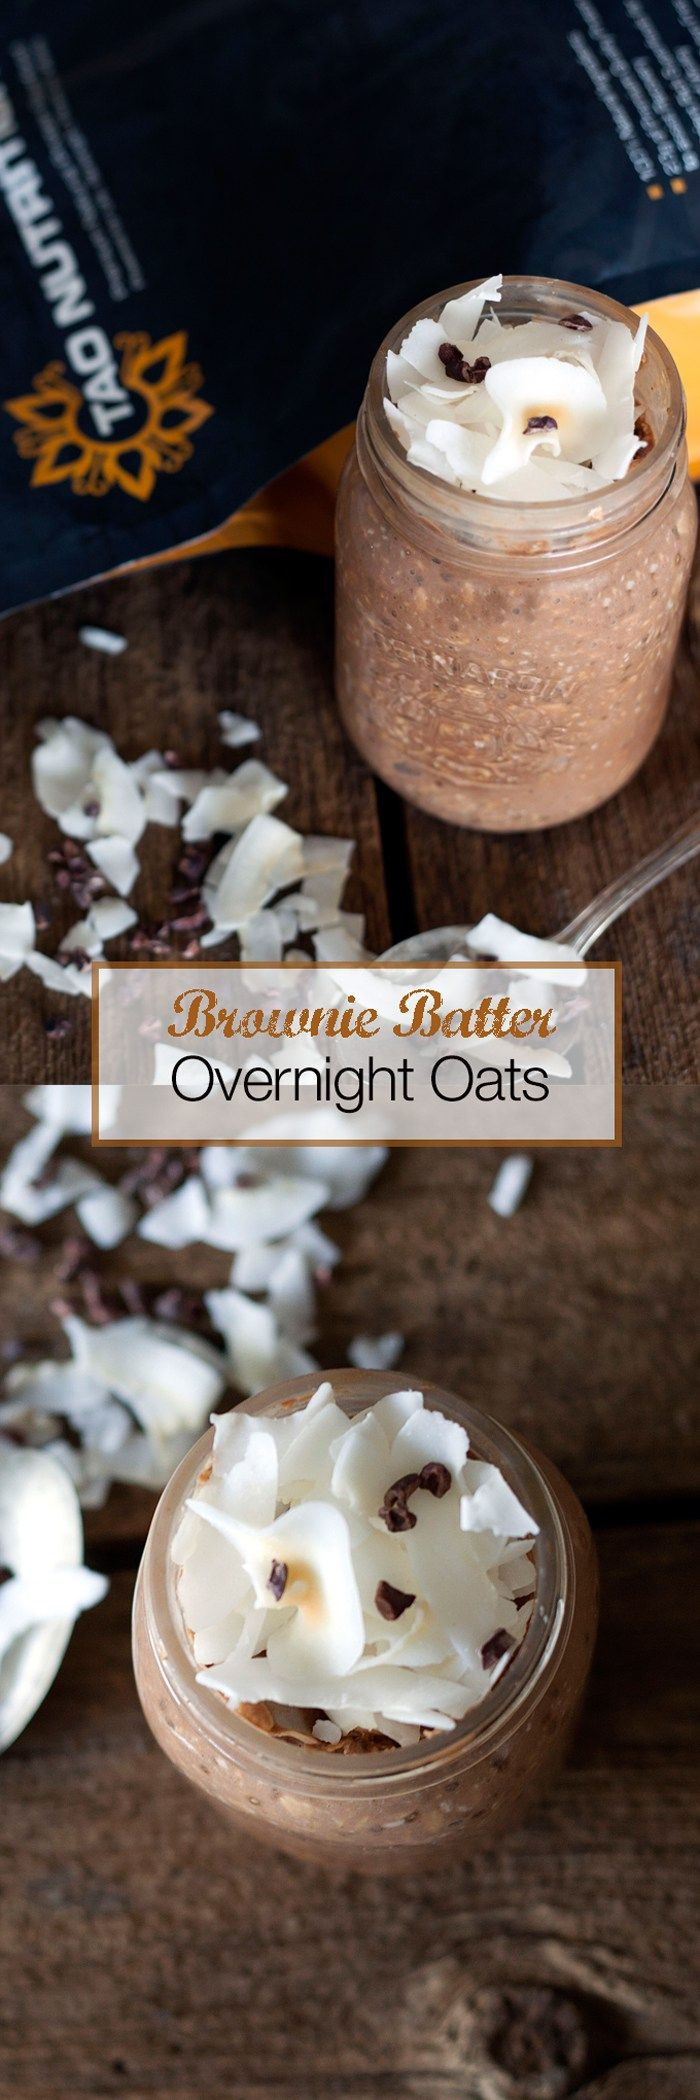 Brownie Batter for breakfast? Yes please!!! These Vegan Over night Oats are the perfect on the go breakfast, just make them the night before and grab it with a spoon to eat on your commute or at your desk! Use gluten free oats for a simple gluten free option!